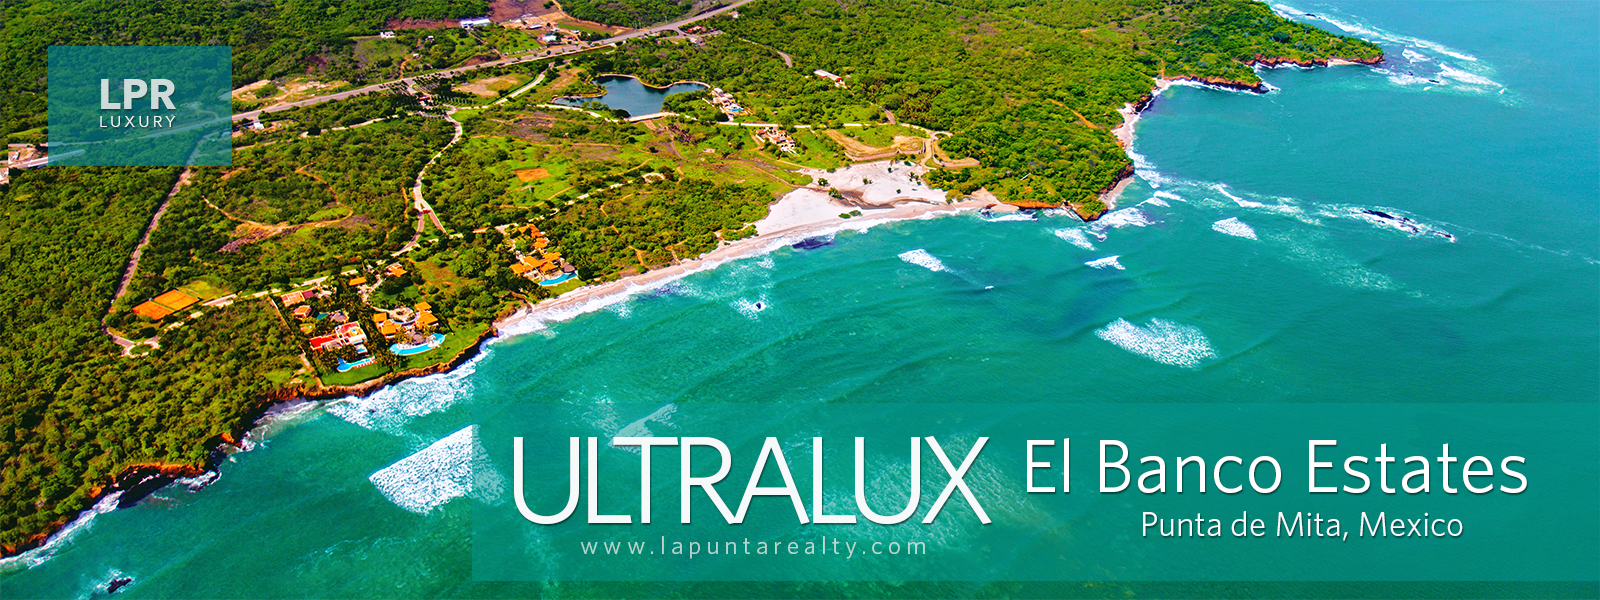 The Ultra Luxury Villas of el Banco - El Banco Estates - Punta de Mita Ultra Luxury Vacation Rental Villas North Puerto Vallarta